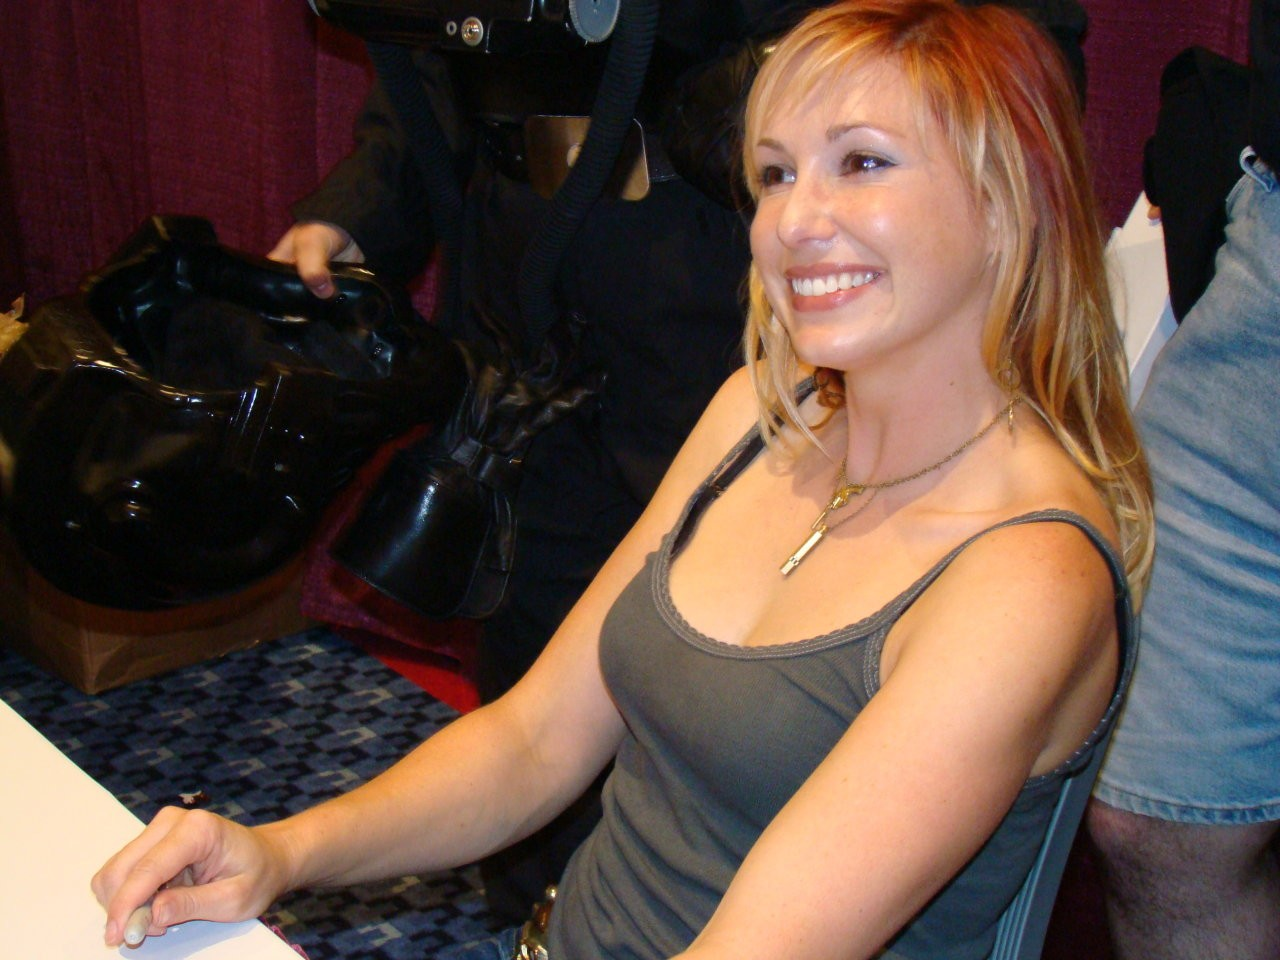 Kari Byron   Kari Byron Photo  25787357    Fanpop fanclubs